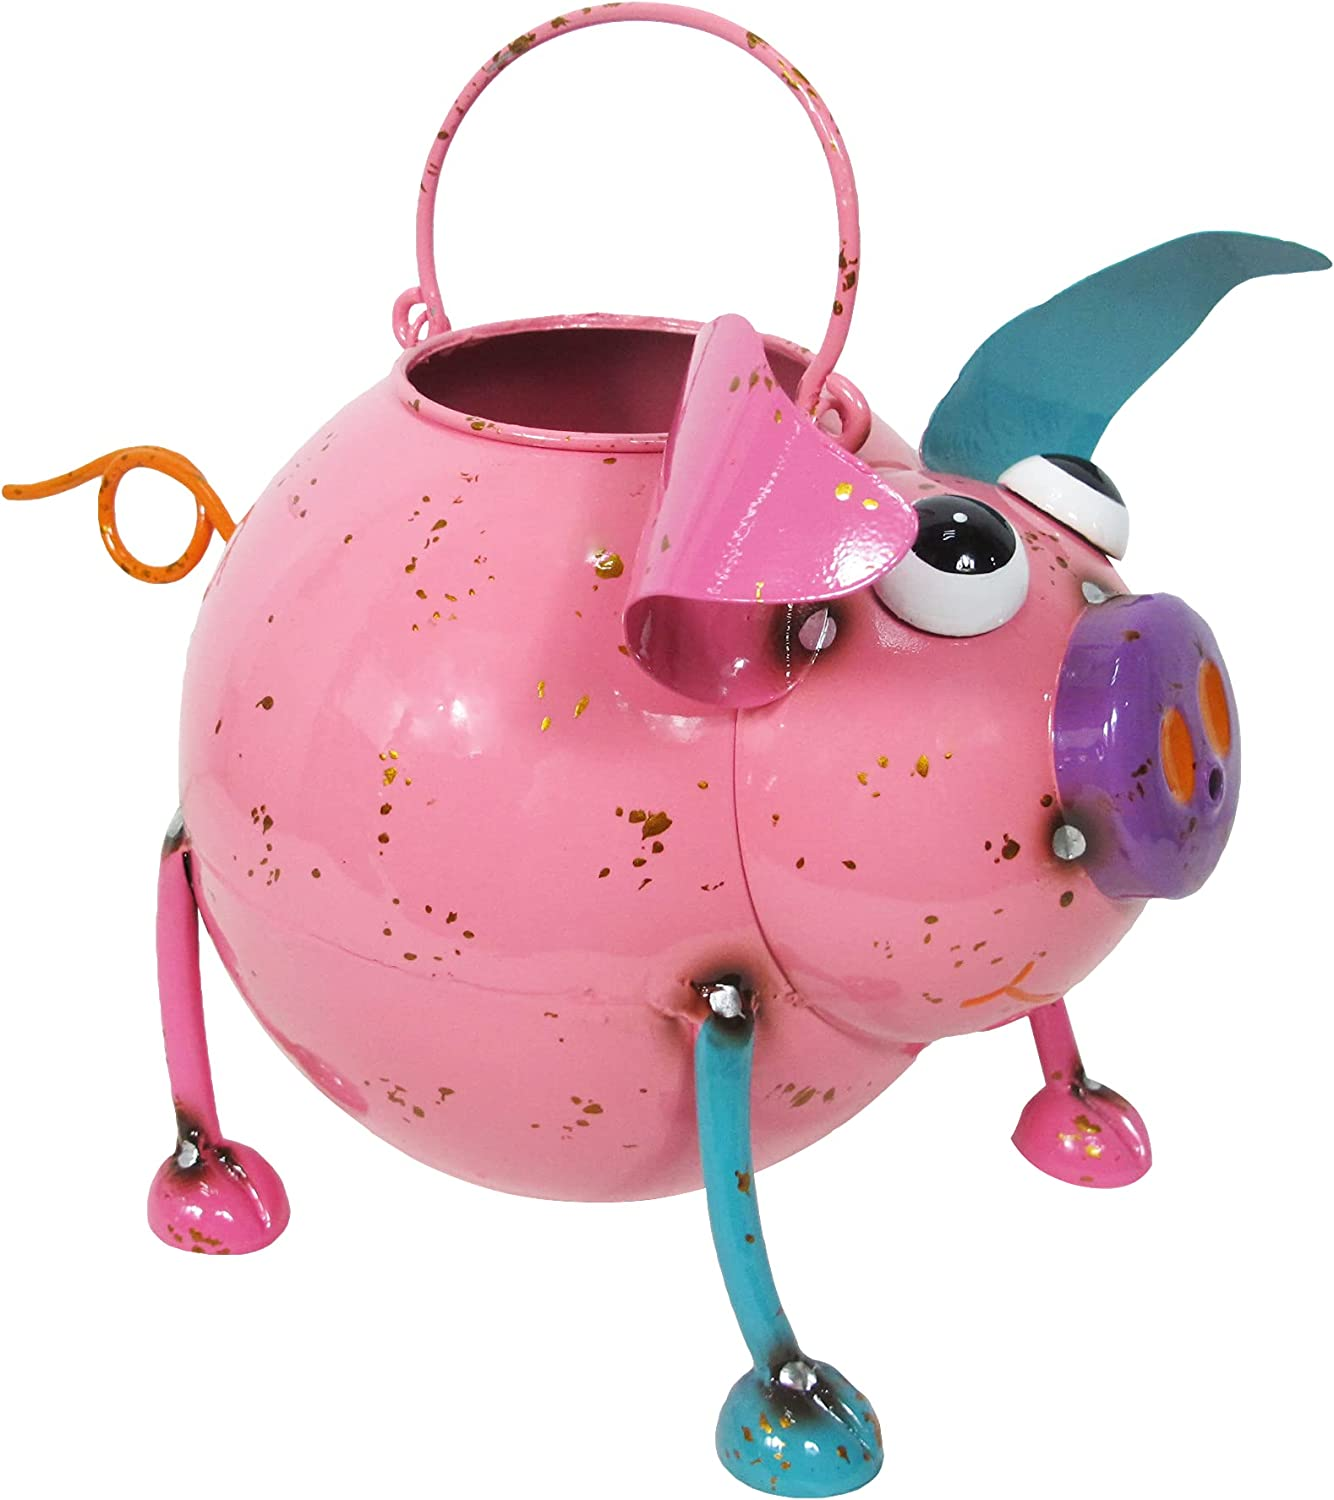 Fun Some reservation Colorful Enameled Metal Watering - Recommended Can Pig Art Continental